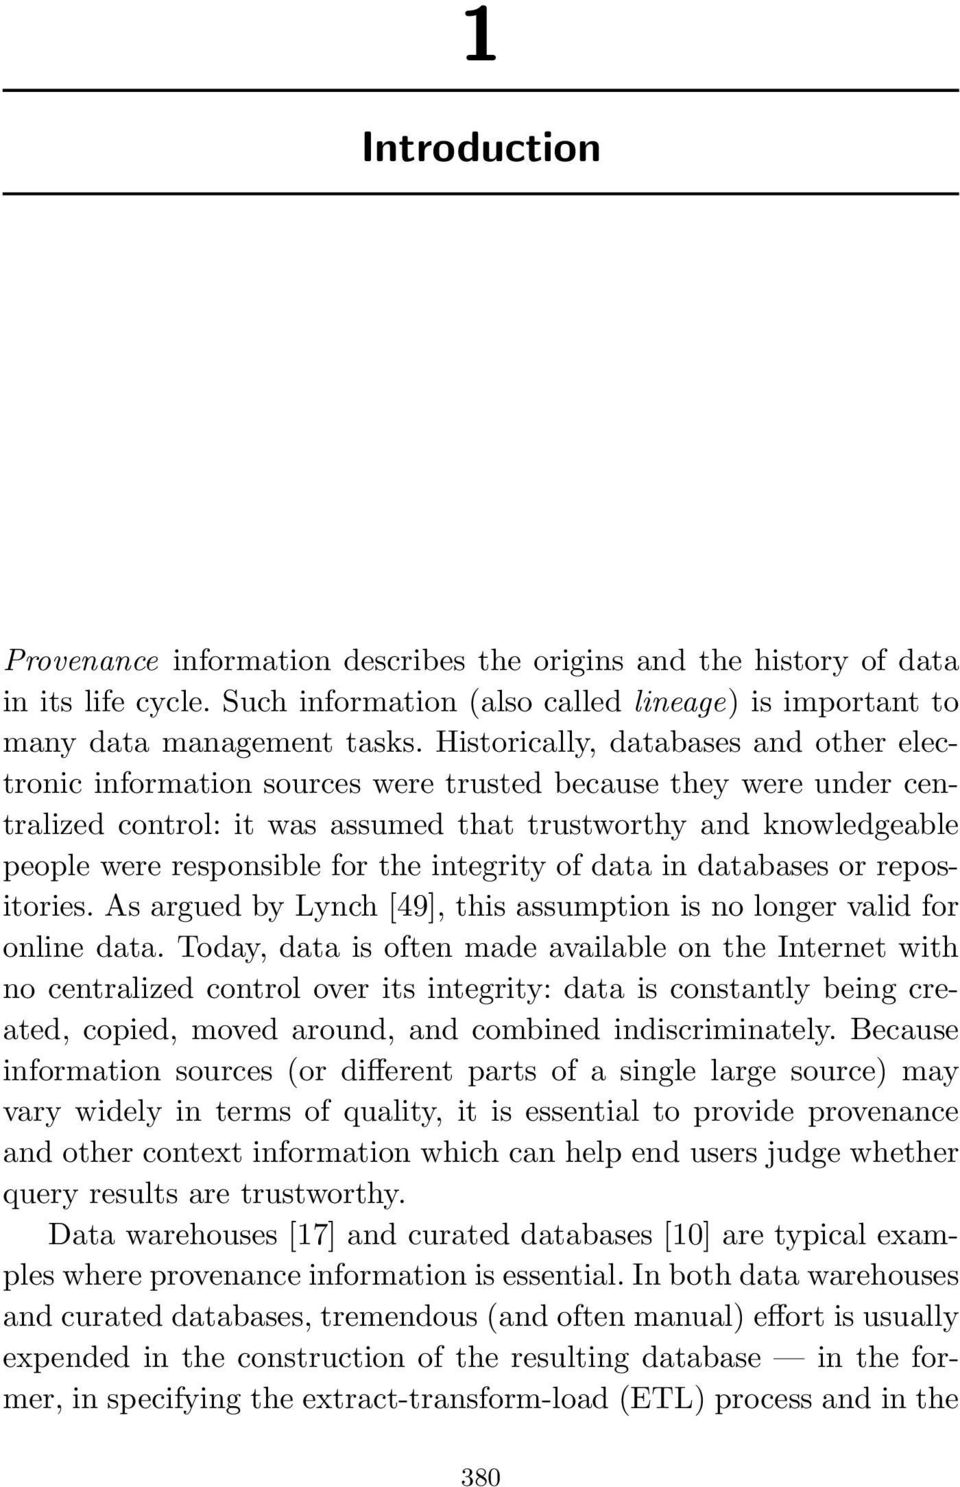 for the integrity of data in databases or repositories. As argued by Lynch [49], this assumption is no longer valid for online data.